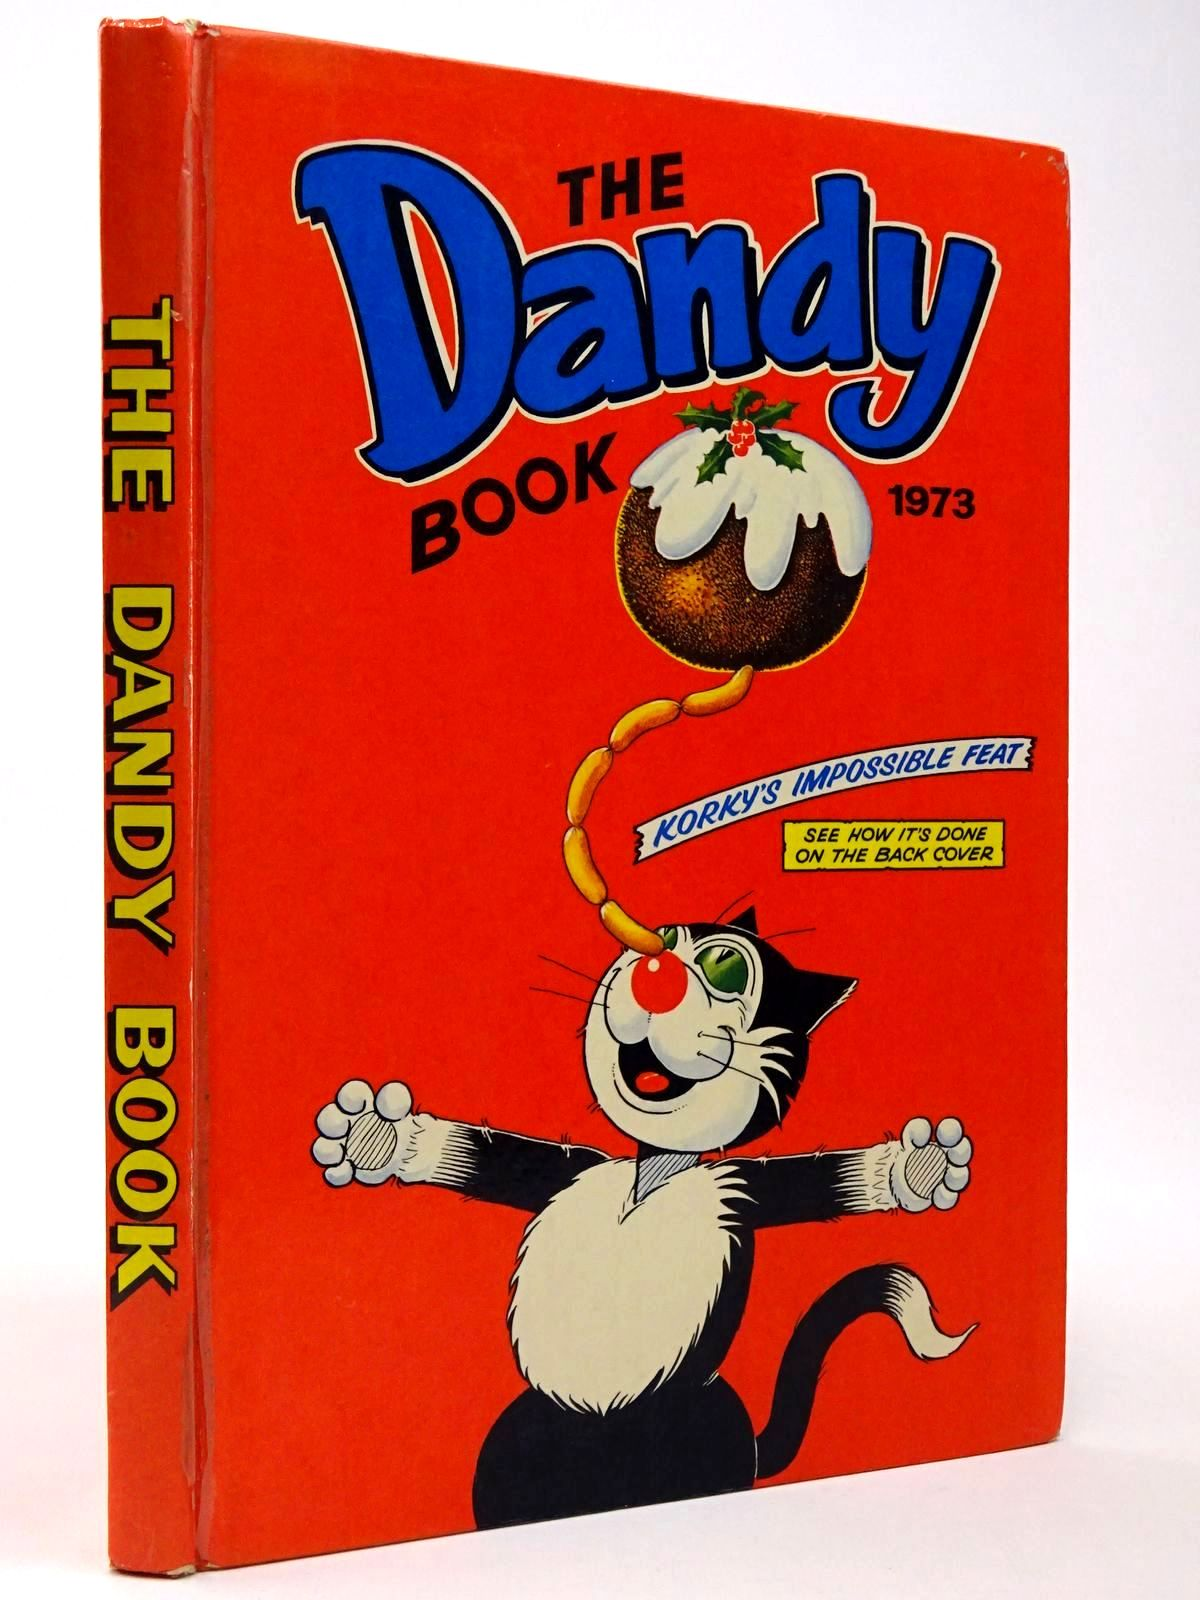 Photo of THE DANDY BOOK 1973 published by D.C. Thomson & Co Ltd. (STOCK CODE: 2129816)  for sale by Stella & Rose's Books